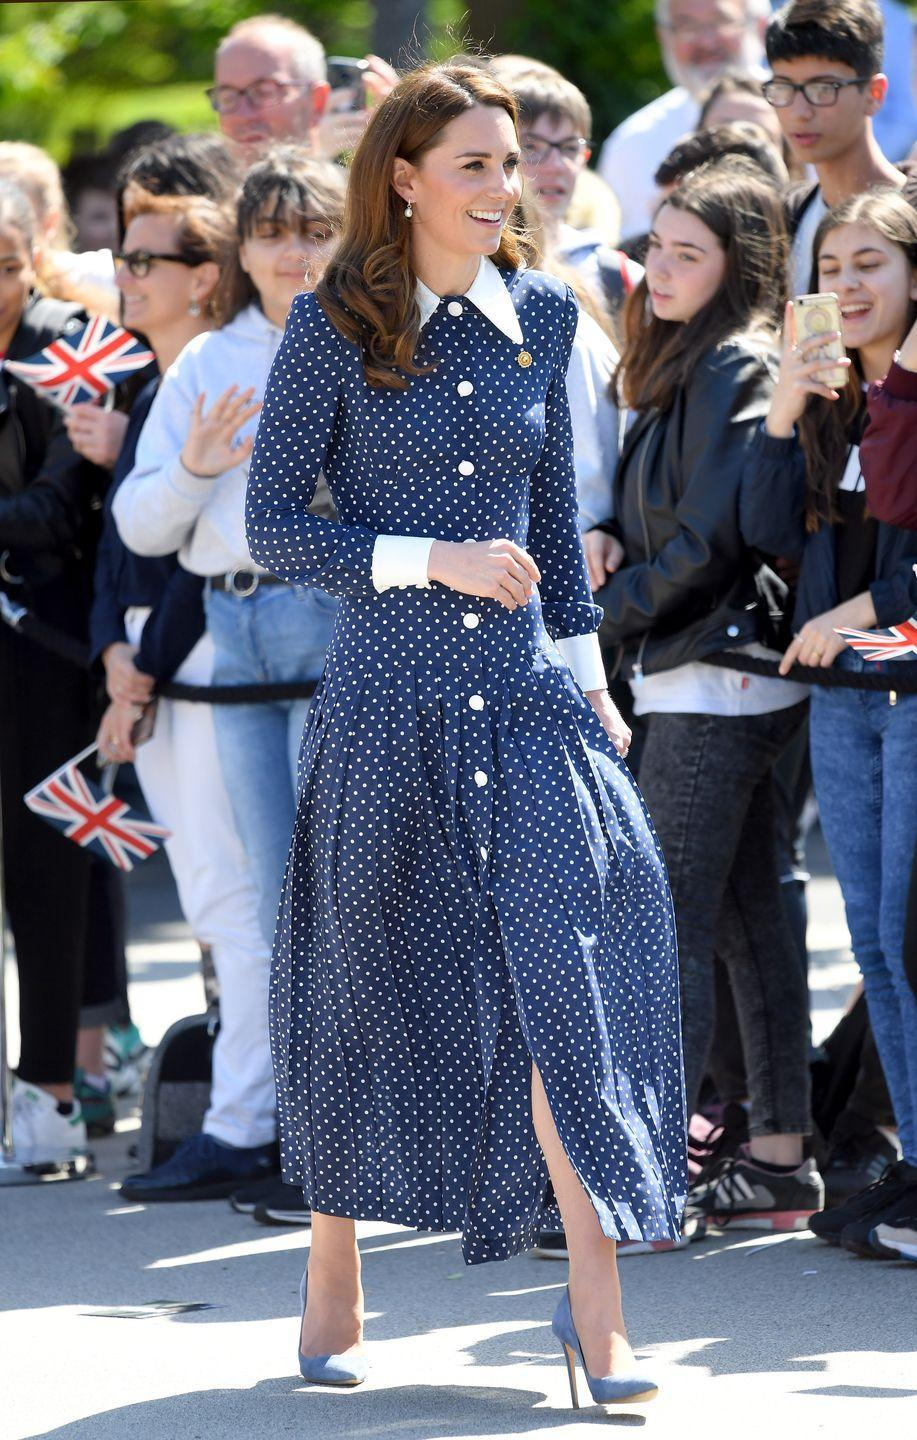 "<p>During a visit to Bletchley Park—the WWII-era facility where codebreakers, including Kate's grandmother, worked to decipher Axis messages—<a href=""https://www.townandcountrymag.com/style/fashion-trends/a27455668/kate-middleton-alessandra-rich-dress-bletchley-park-d-day-75th-anniversary/"" rel=""nofollow noopener"" target=""_blank"" data-ylk=""slk:the Duchess rewore a navy polka-dot dress from Alessandra Rich"" class=""link rapid-noclick-resp"">the Duchess rewore a navy polka-dot dress from Alessandra Rich</a>. She accessorized the dress with a pin designed to look like a gear from the Enigma machine, a device made at Bletchley Park.</p>"